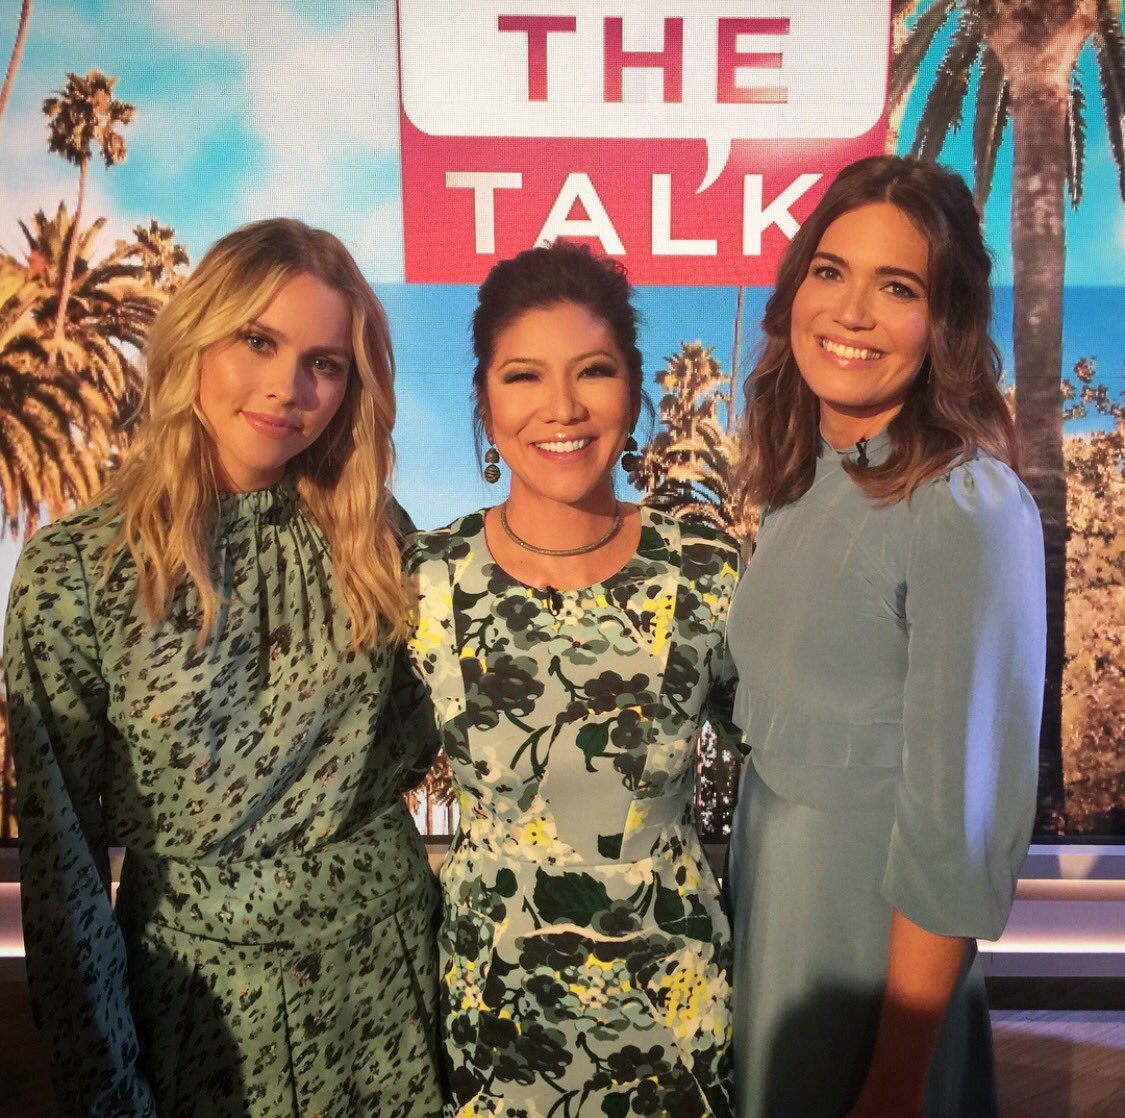 The stars of #ThisIsUs & #TheOriginals @TheMandyMoore & @clair...